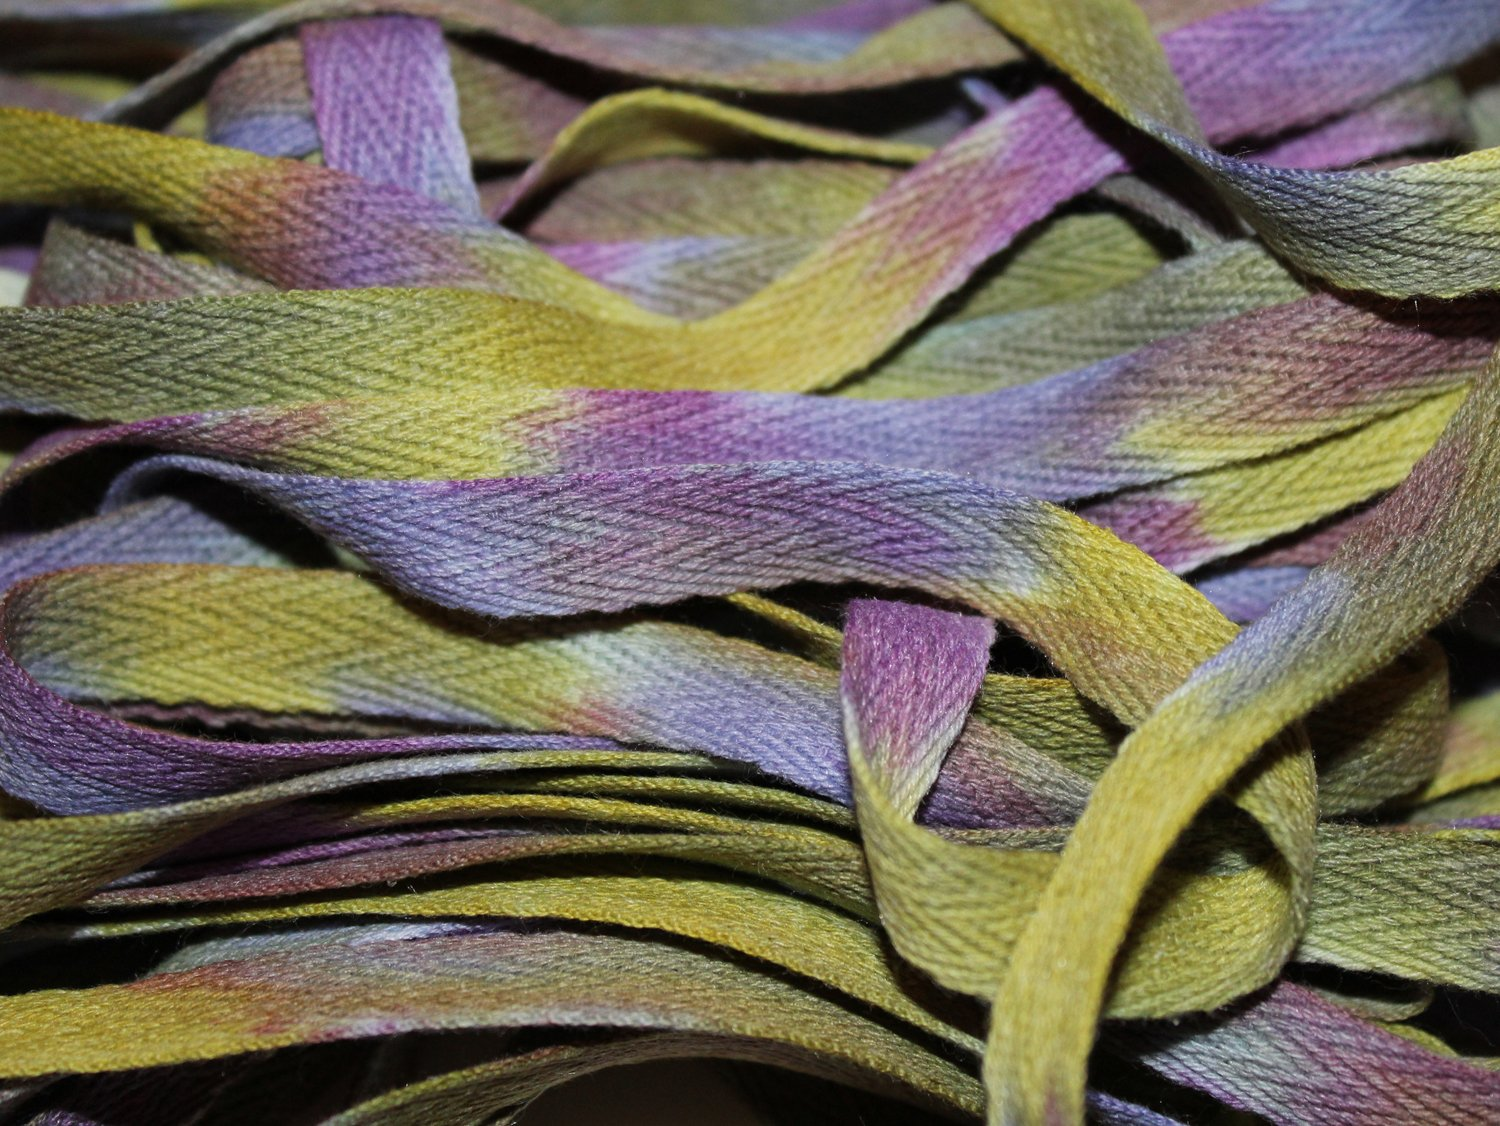 Garden Path - Hand-dyed Cotton Twill Tape 3/8 wide